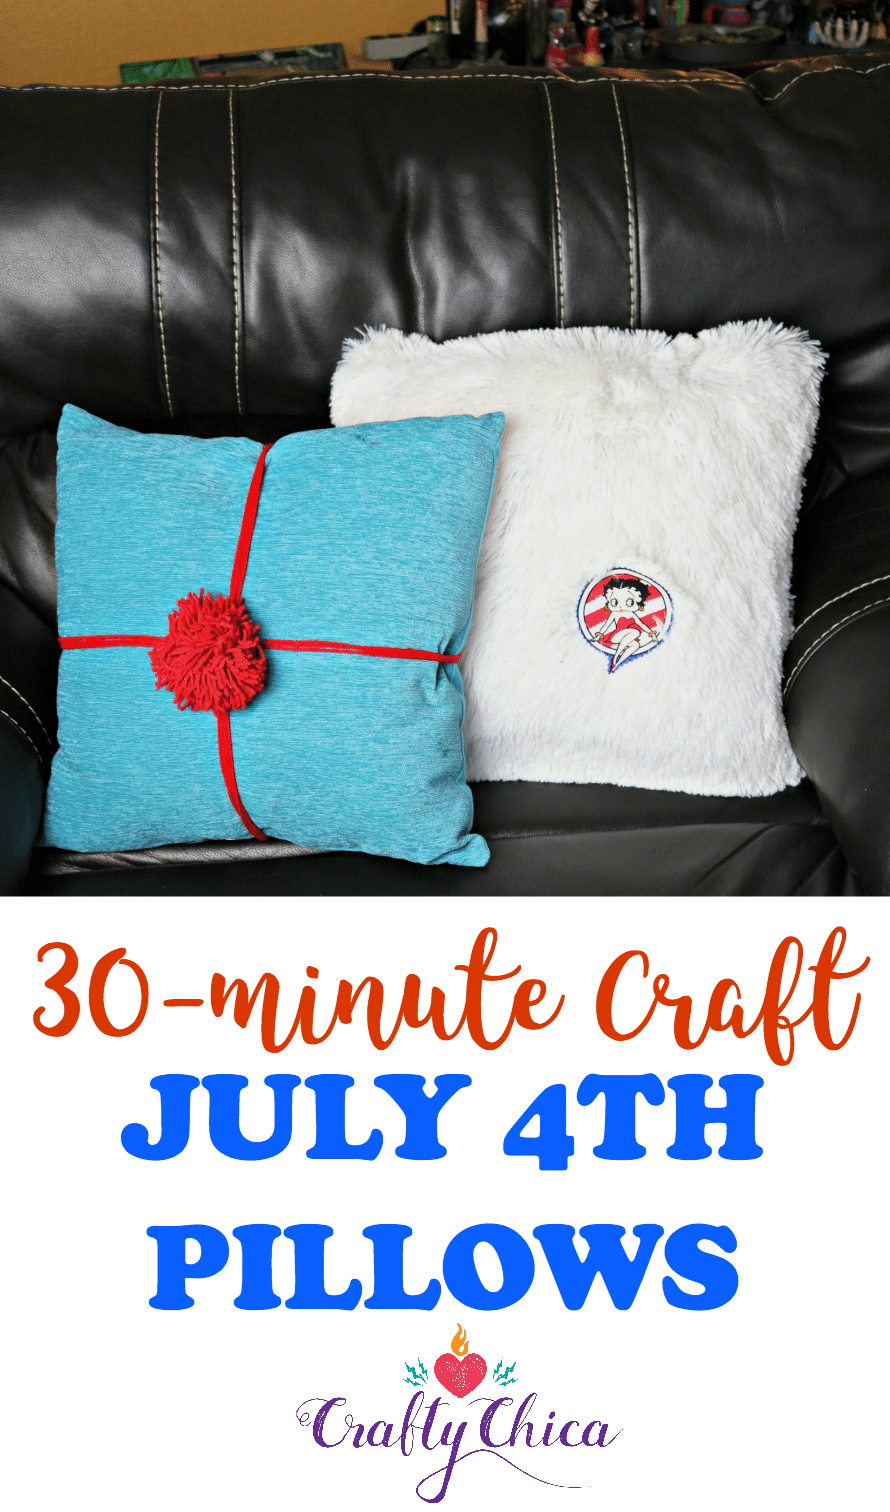 July 4th pillows with removable embellishments, by Crafty Chica.